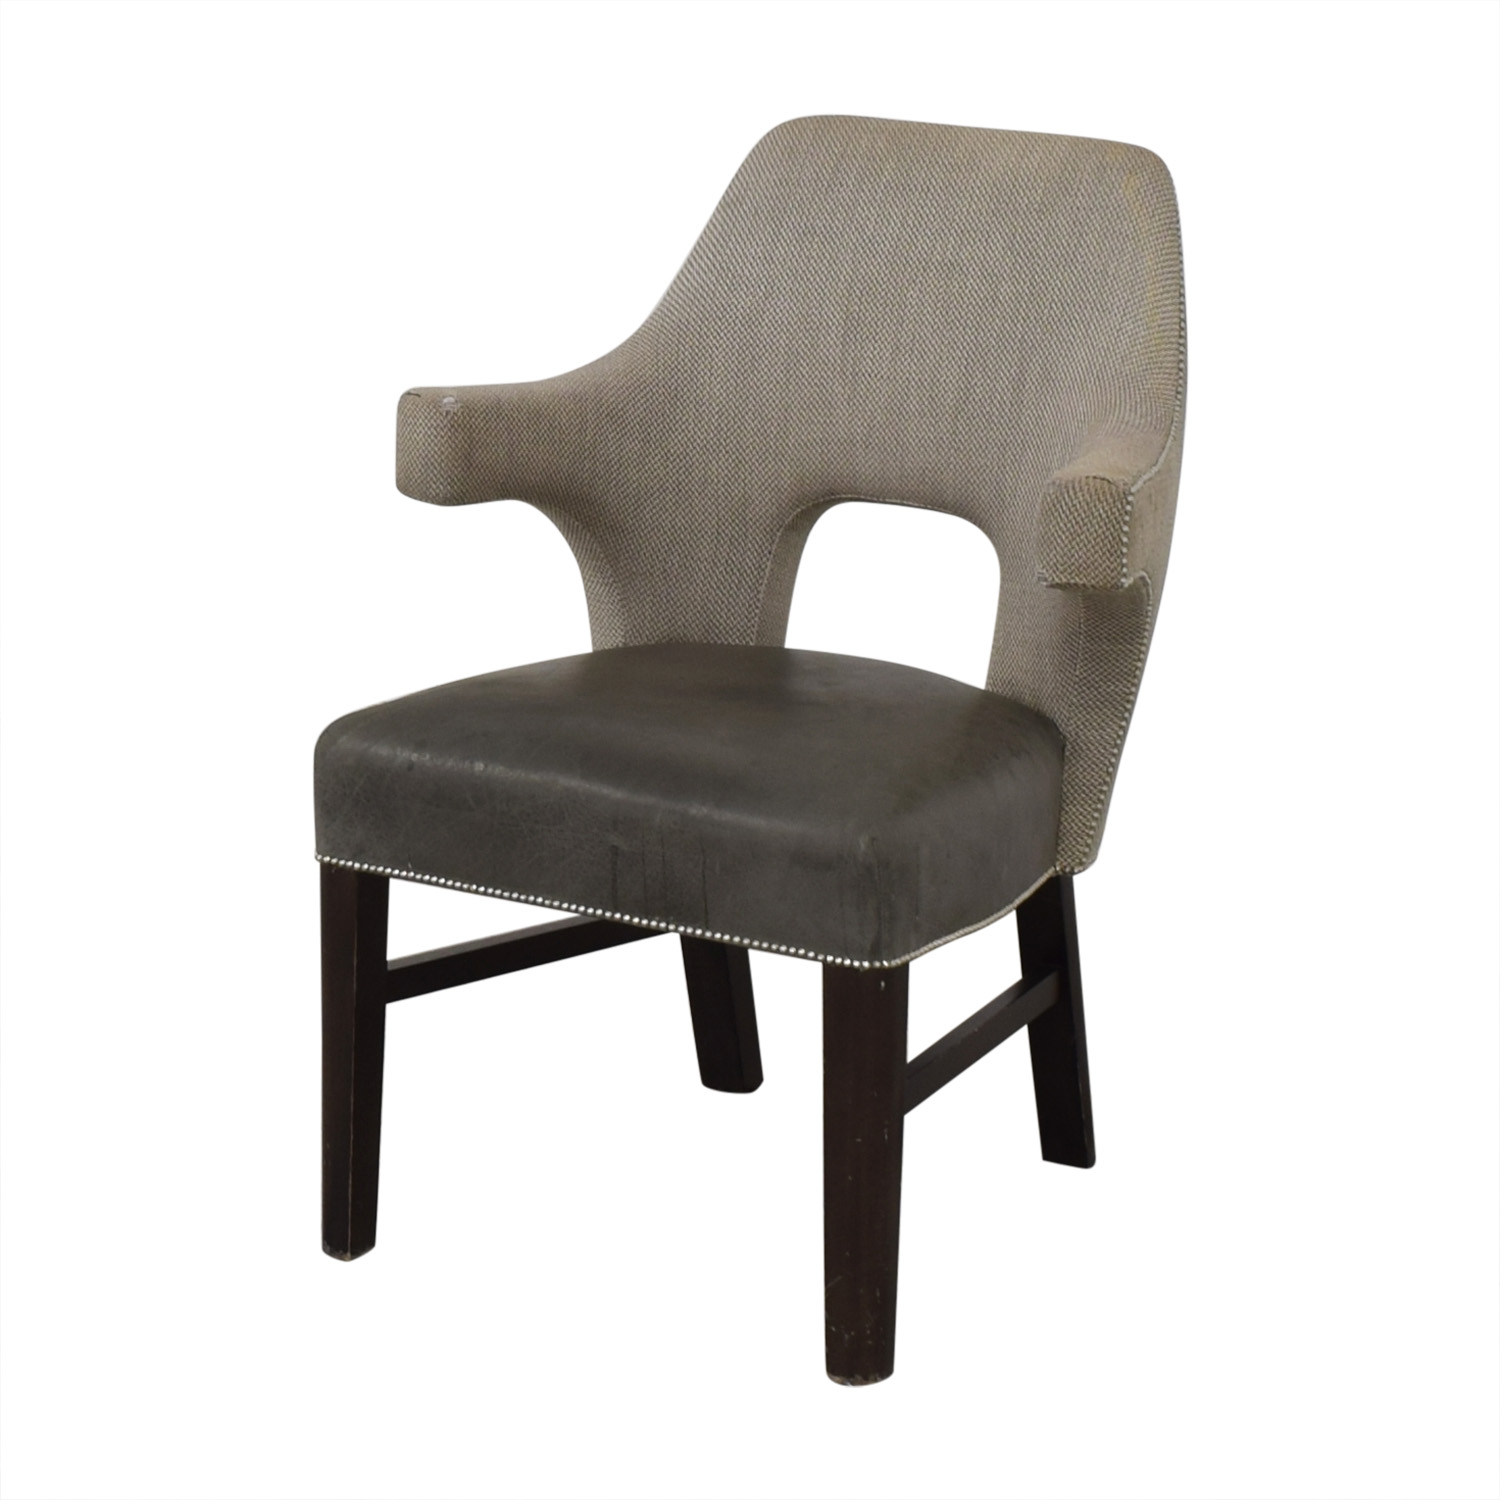 Thom Filicia Thom Filicia Modern Dining Chairs second hand